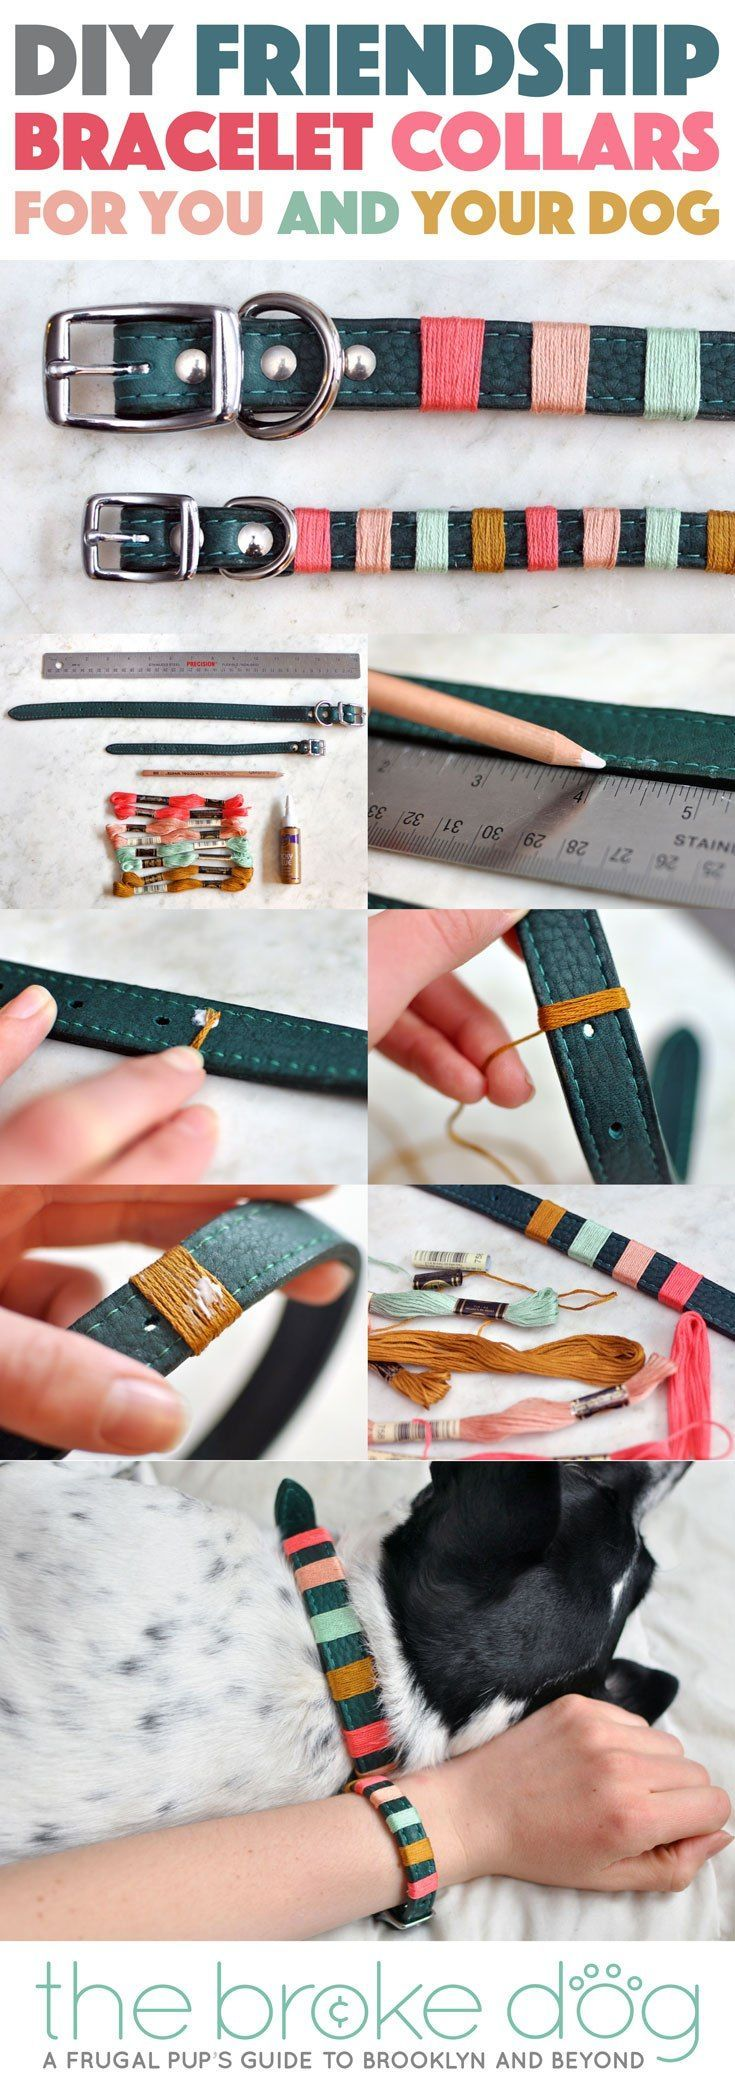 """You may have seen some really amazing """"friendship bracelets"""" for you and your dog from companies like Friendship Collar or Bearytail Leather Company, but are itching for something a little more personal. With just some simple materials and a few minutes, you can make your very own DIY friendship bracelet collars!"""